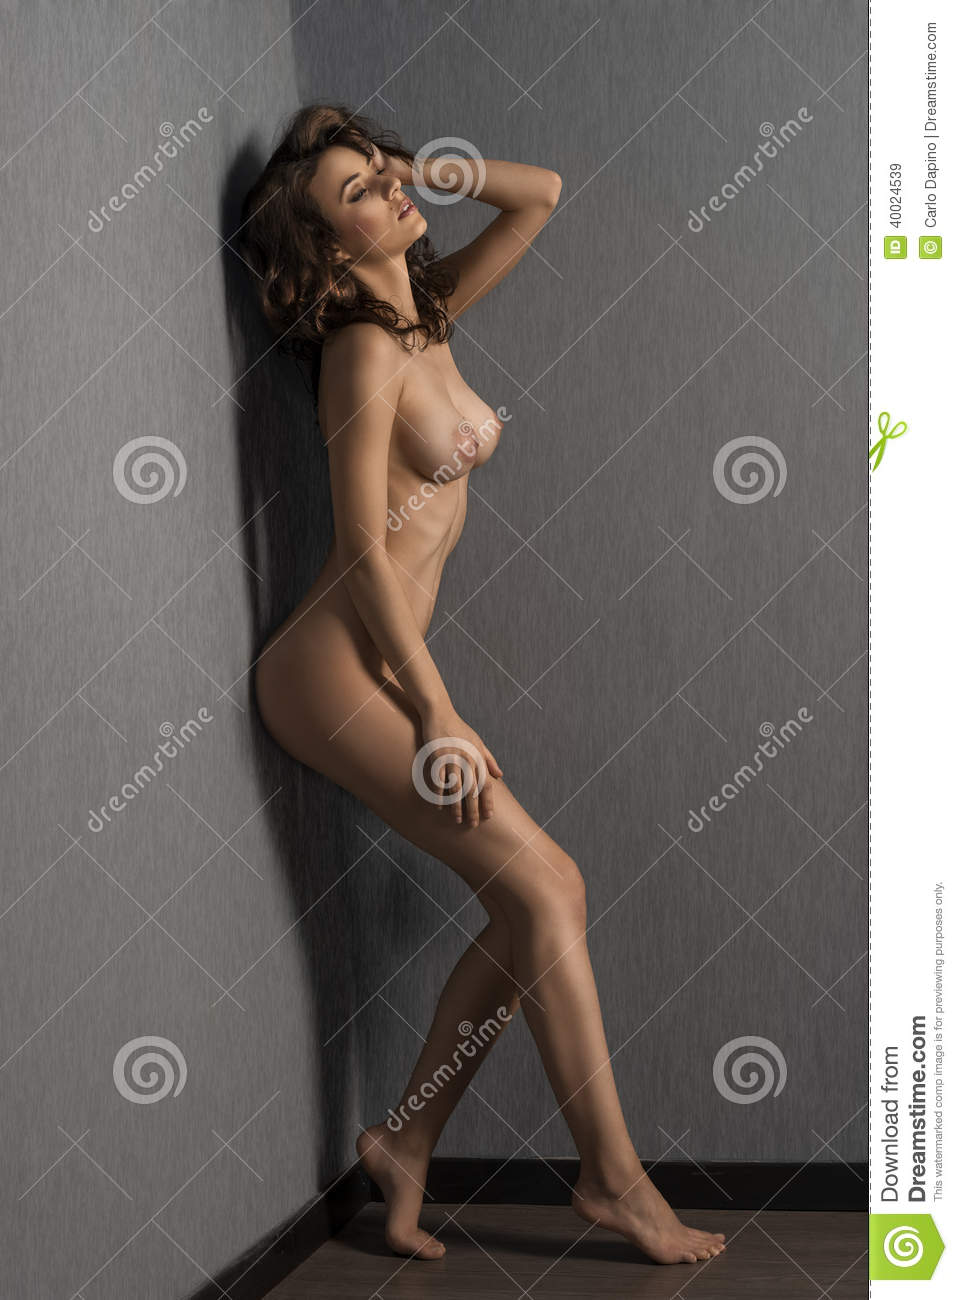 Women Having Sex Concrete Wall 73